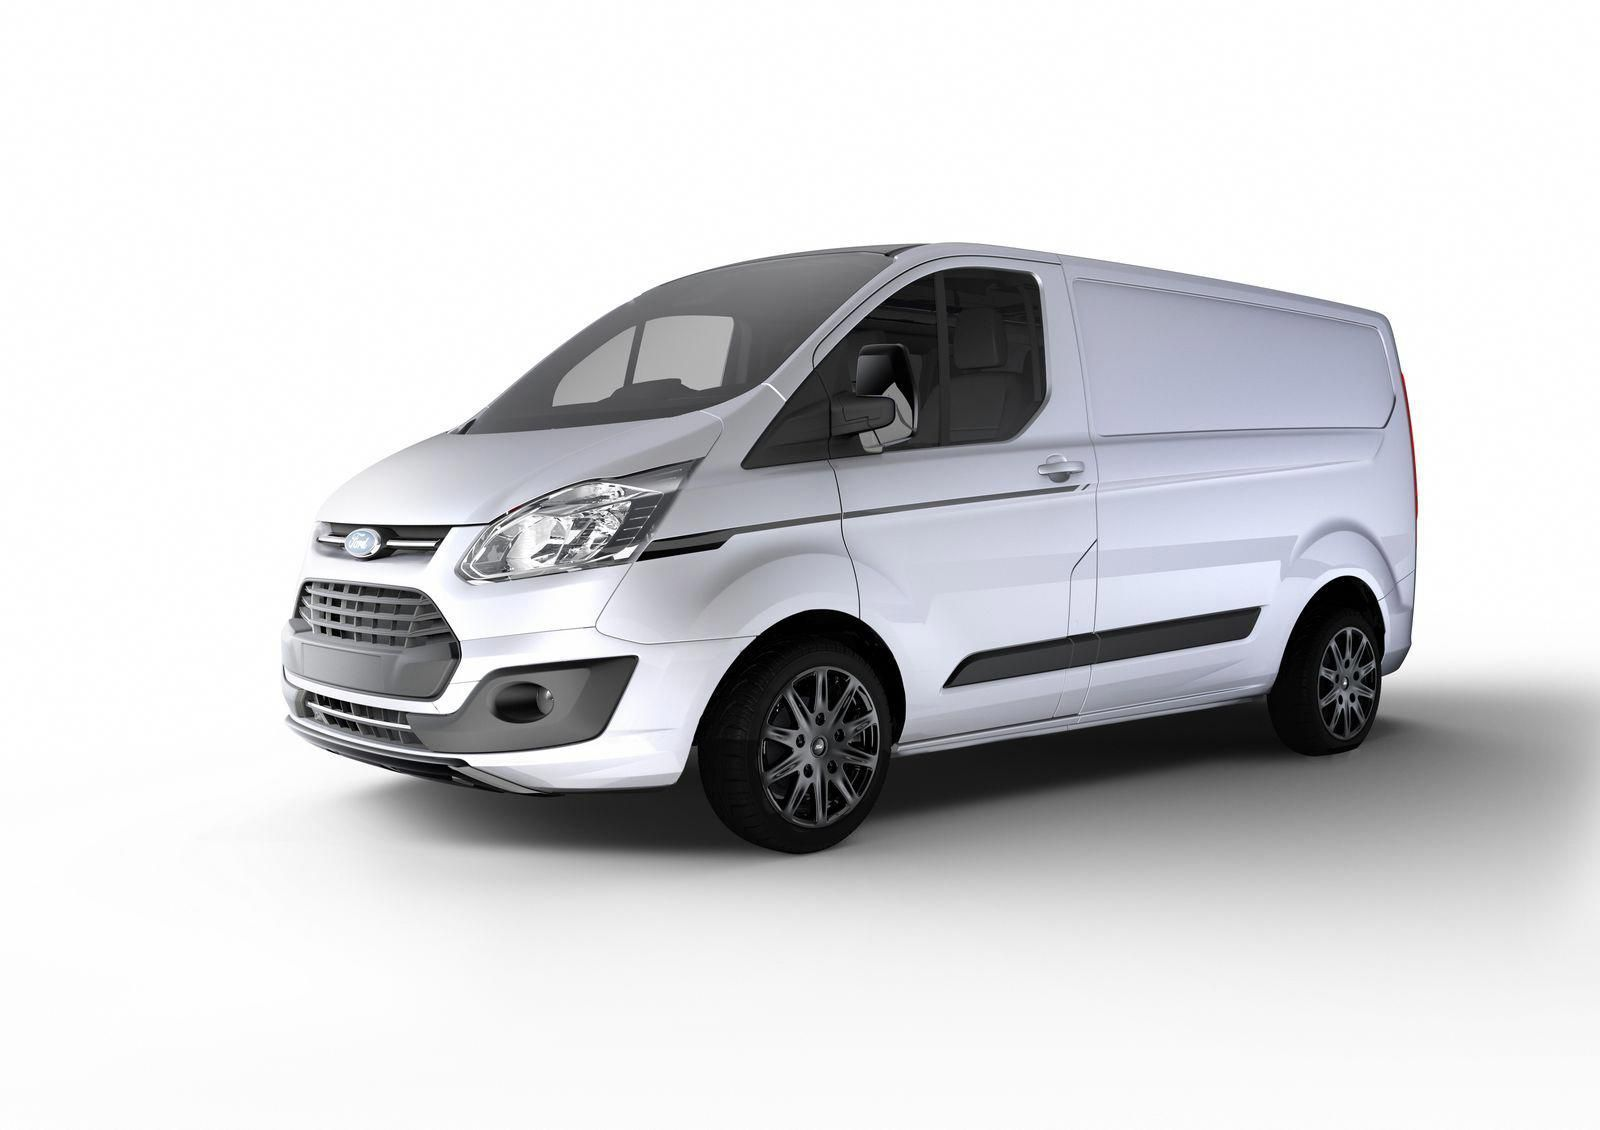 Ford Adds More Appeal To Transit With Custom Color And Sport Editions Carscoops Ford Transit Transit Custom Ford